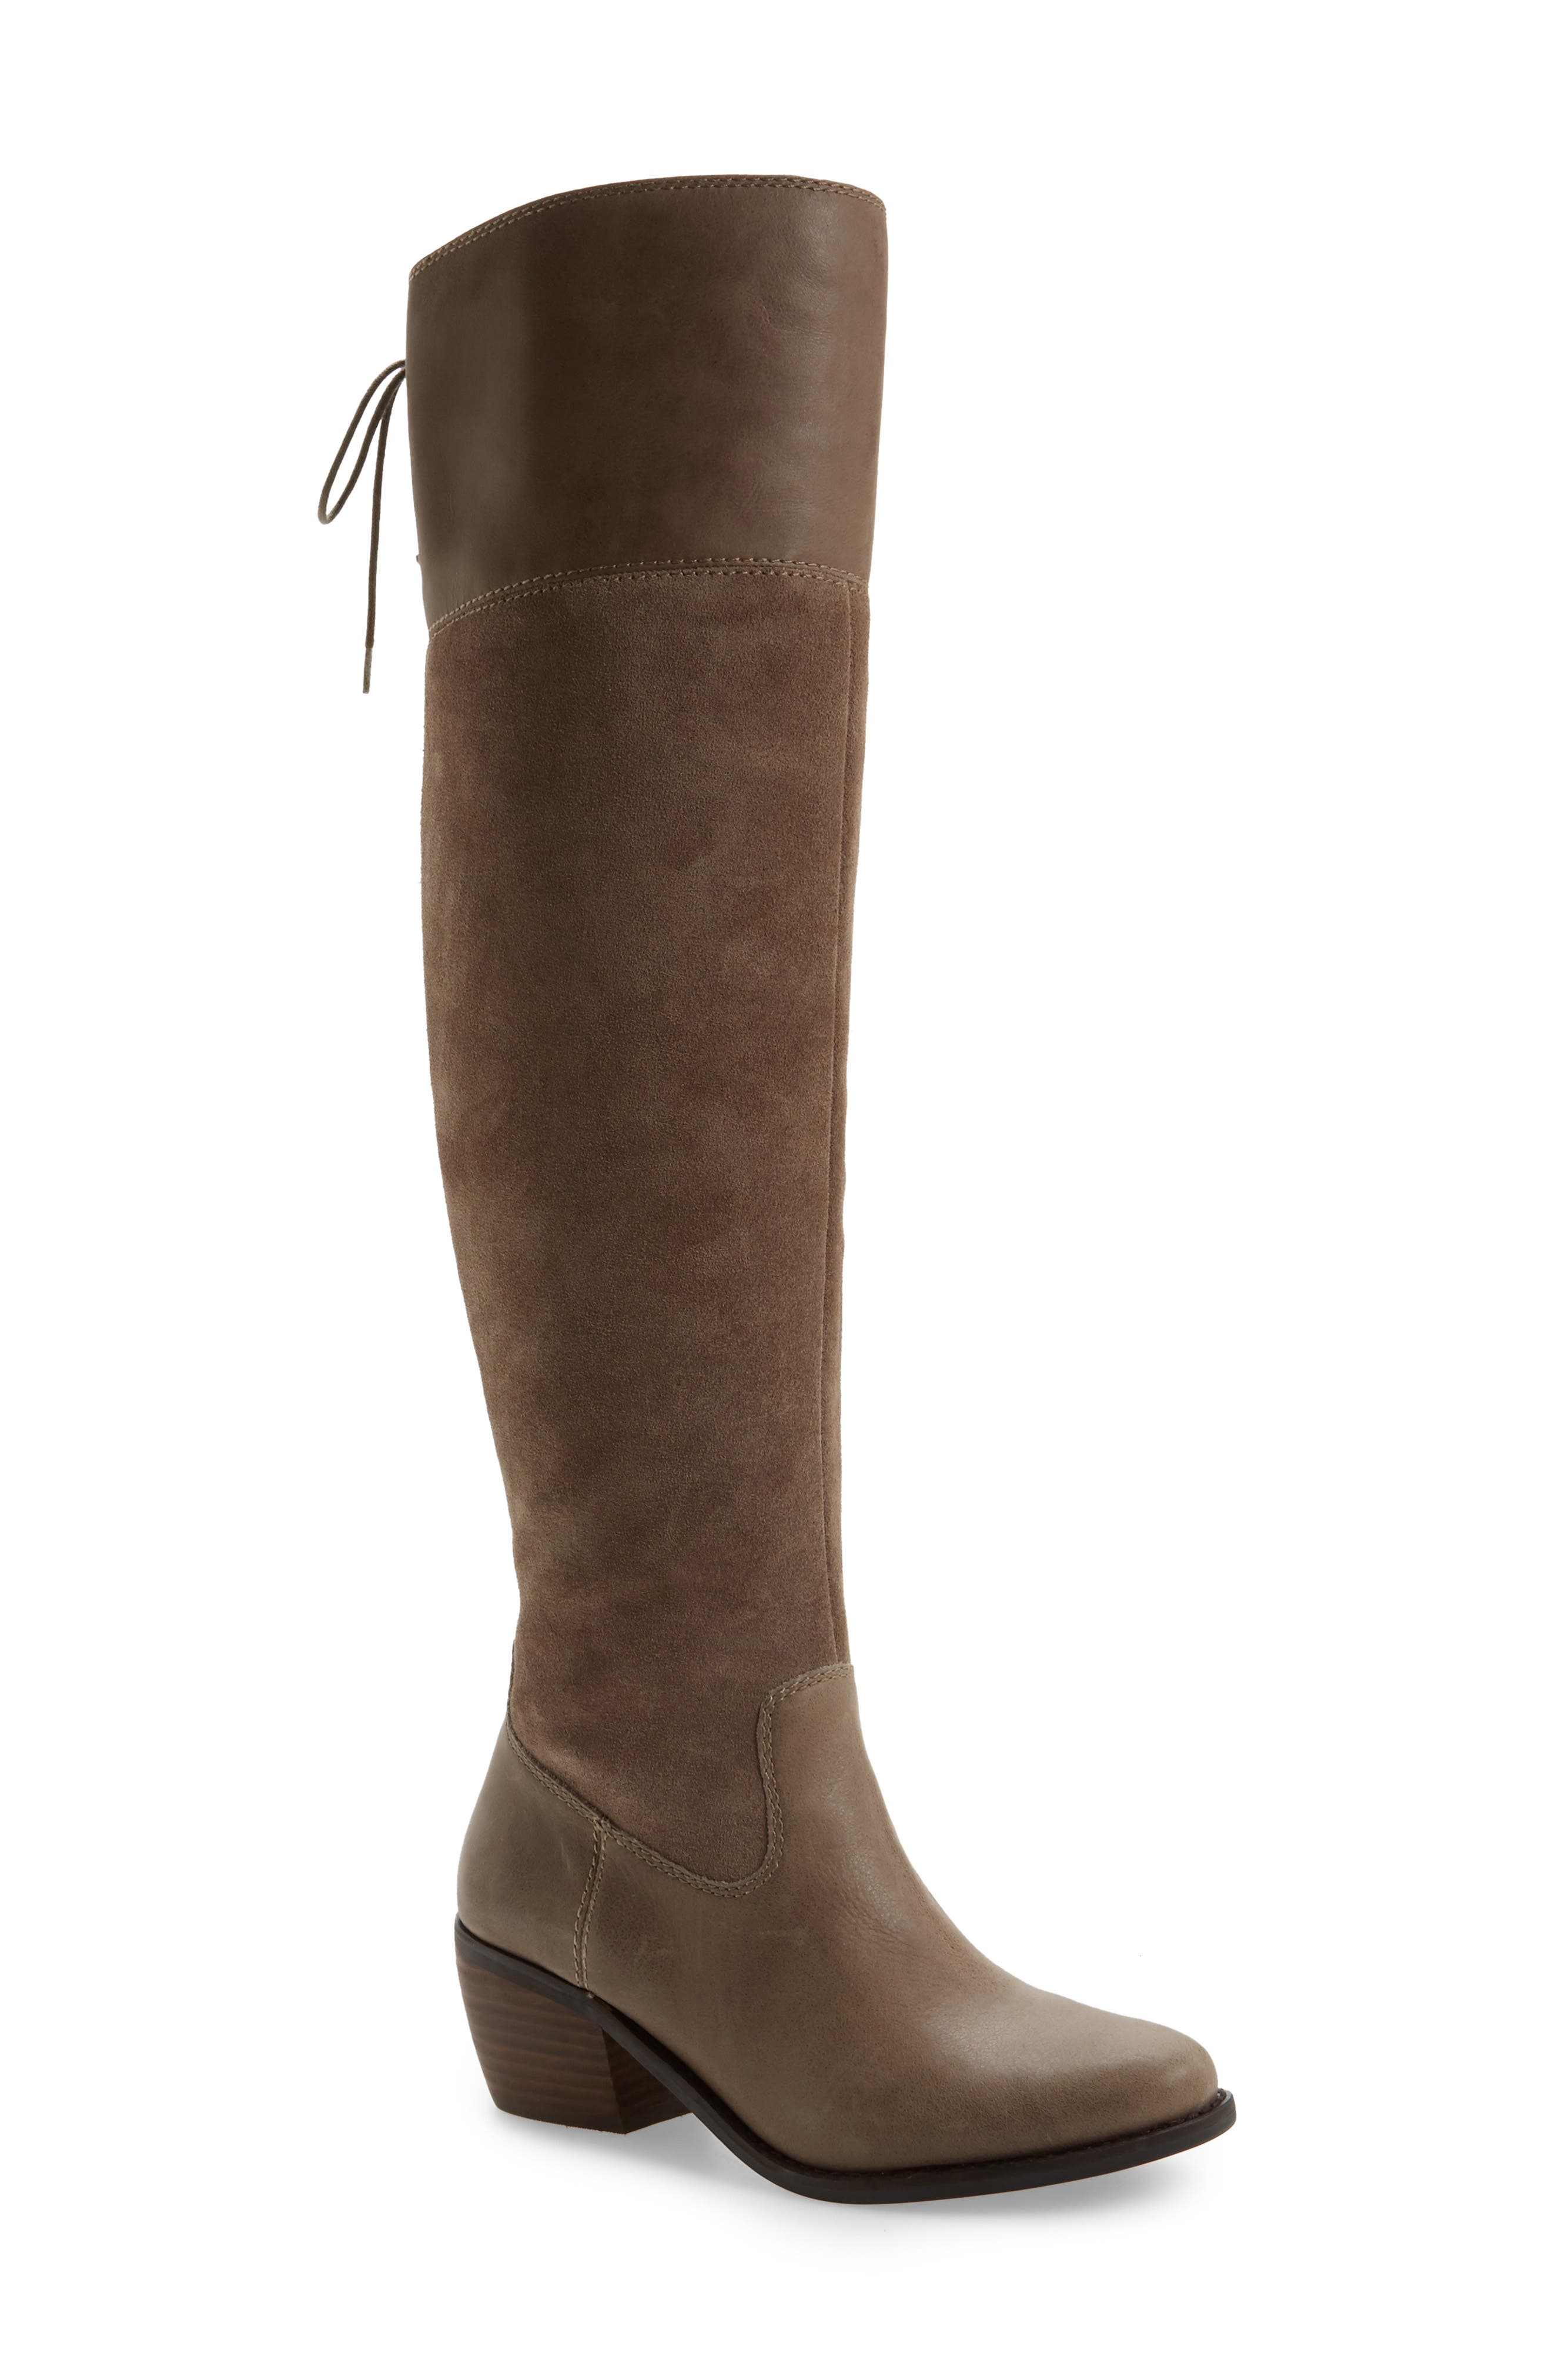 Komah Over the Knee Boot,                         Main,                         color, Brindle Leather